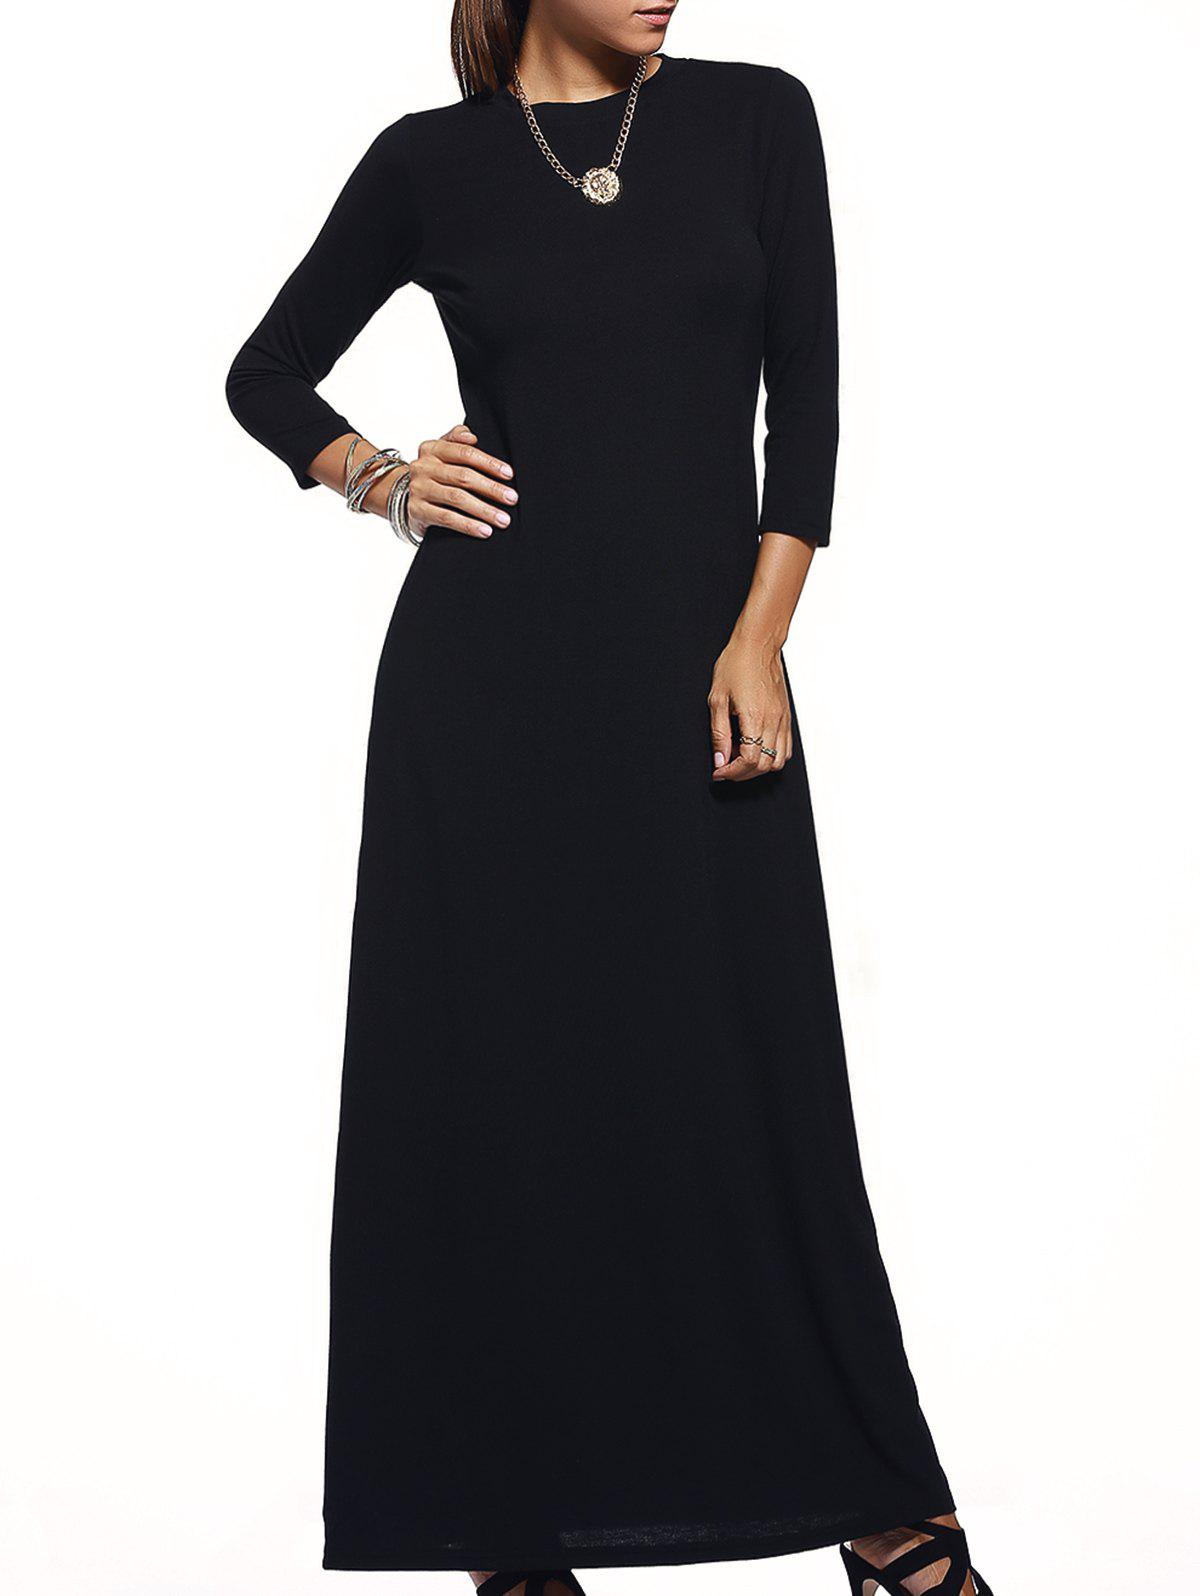 Brief Pure Color Round Collar 3/4 Sleeve Maxi Dress For Women - BLACK S